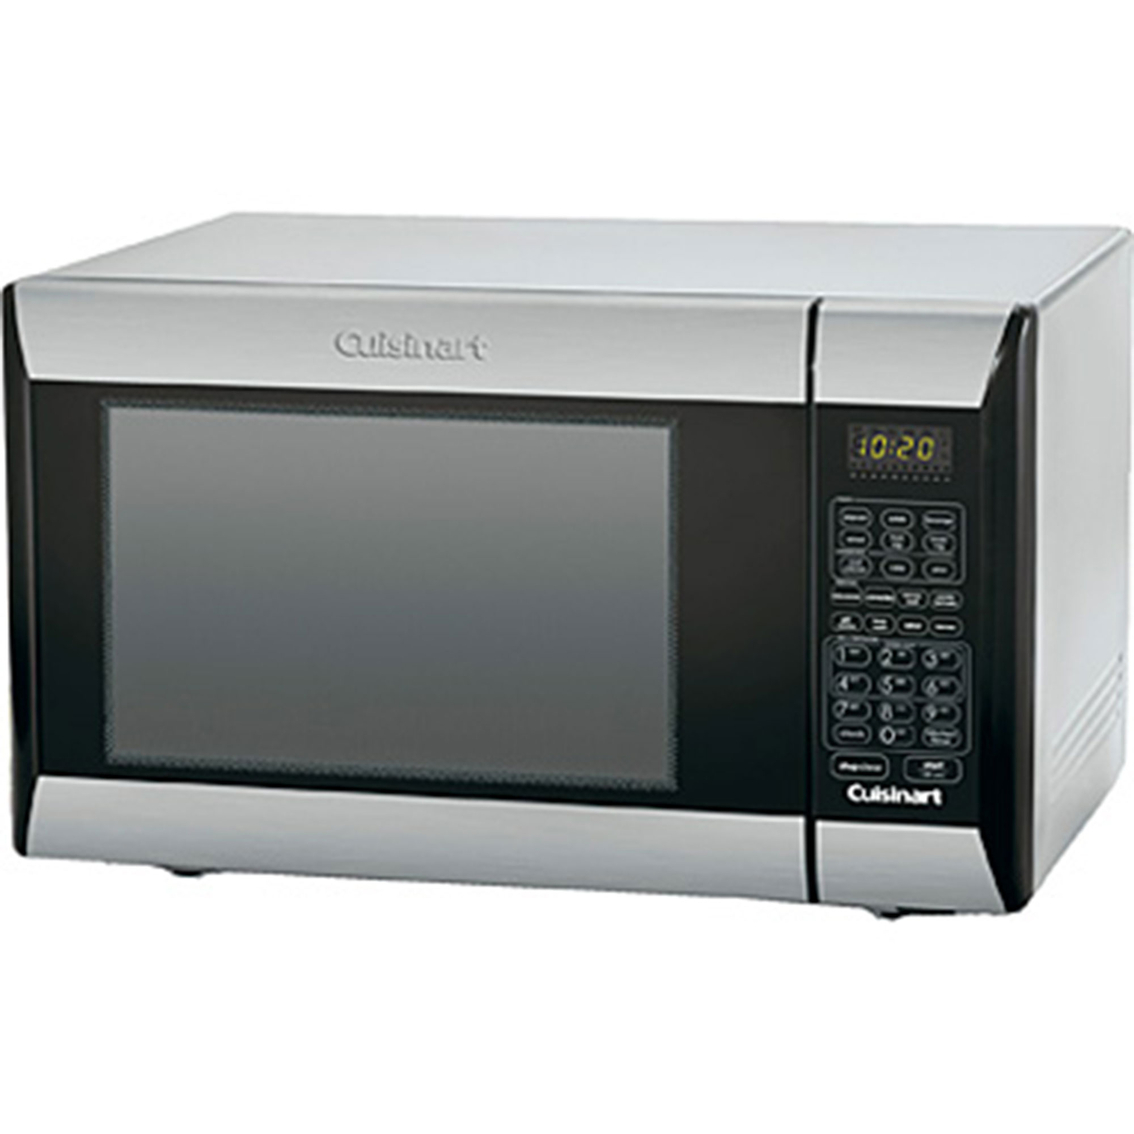 Which Microwave Oven To Buy Convection Or Grill: Cuisinart Convection Microwave Oven With Grill